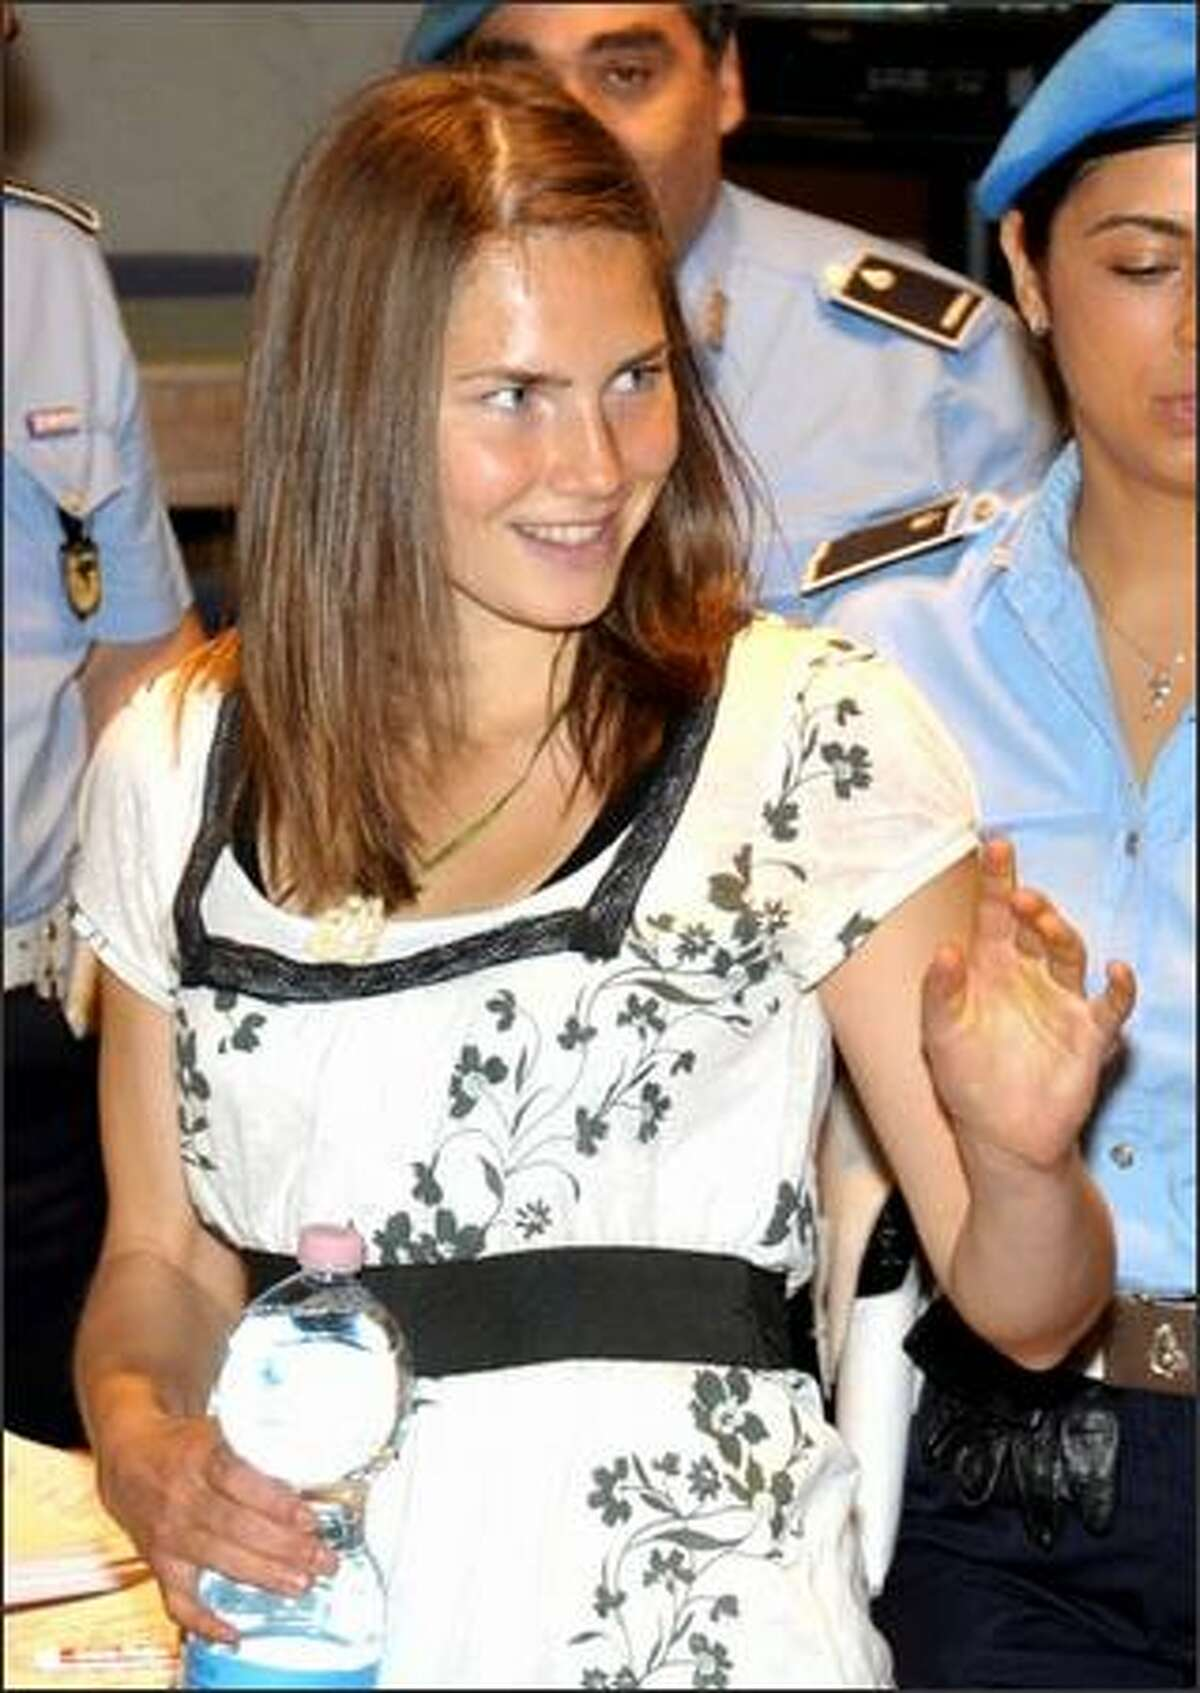 Murder suspect Amanda Knox arrives for a hearing in Perugia, Italy, on Saturday.